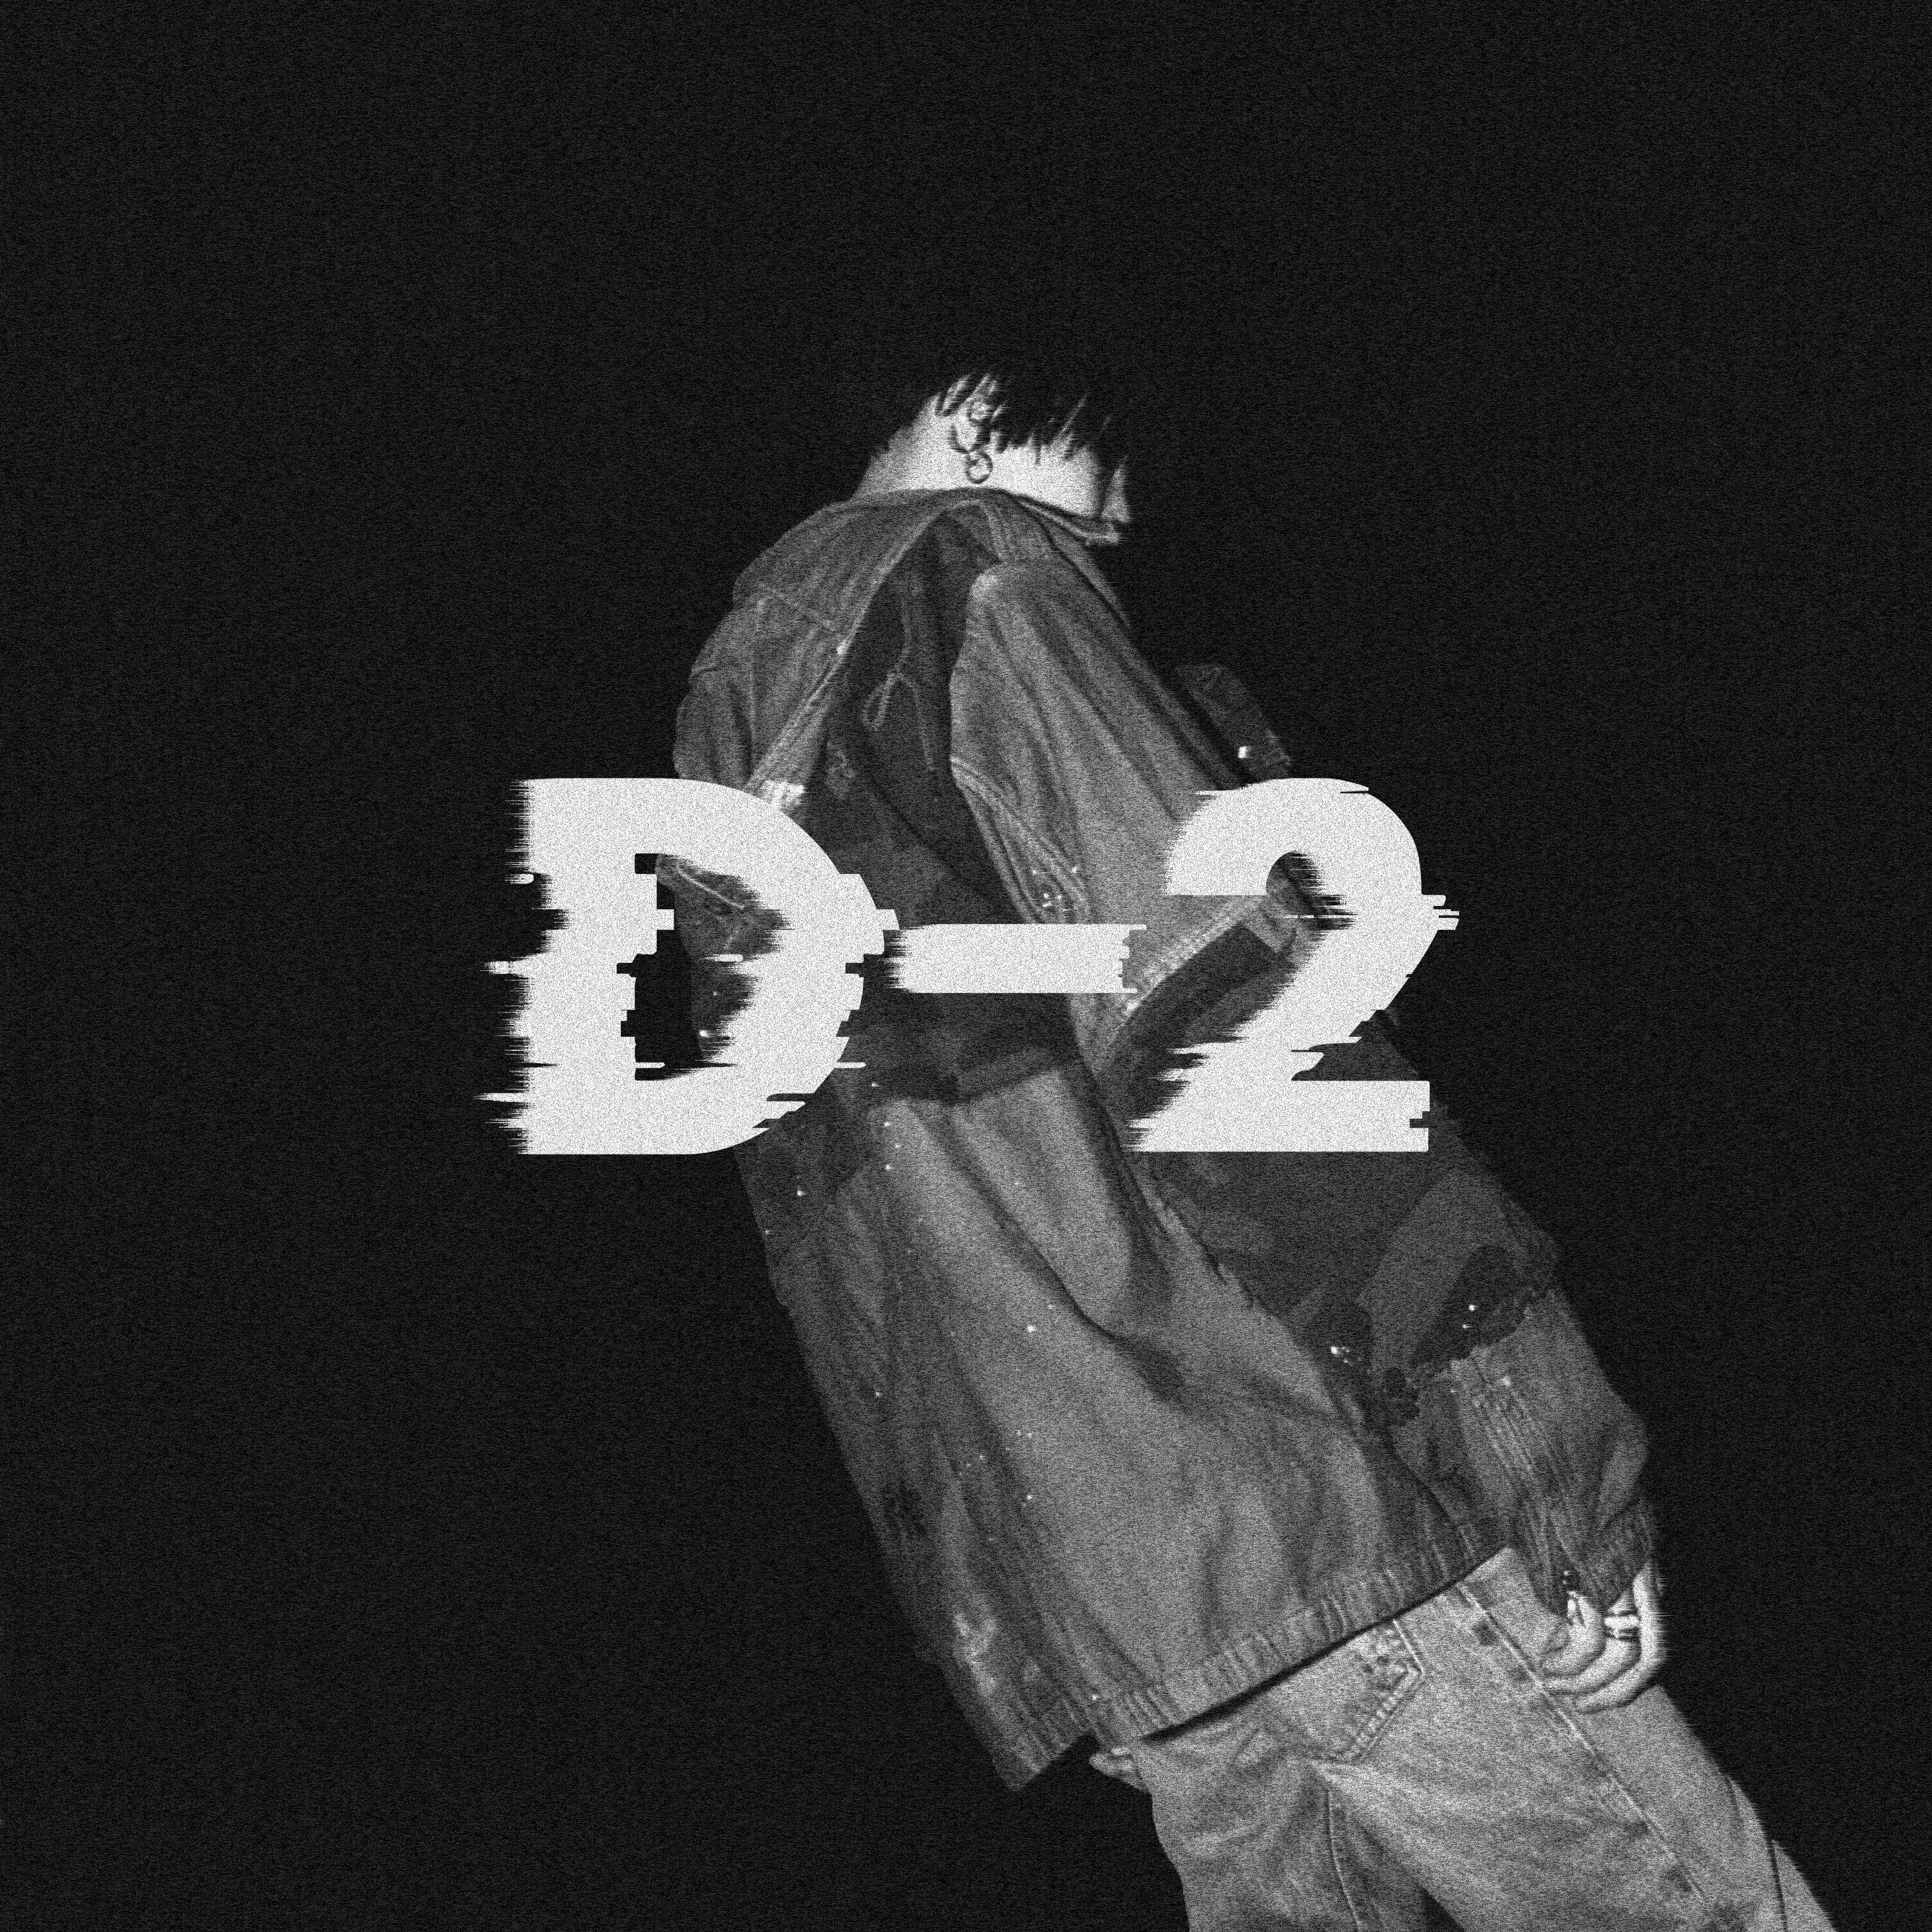 BTS's Suga Reflects on His New Solo Mixtape as Agust D on D-2